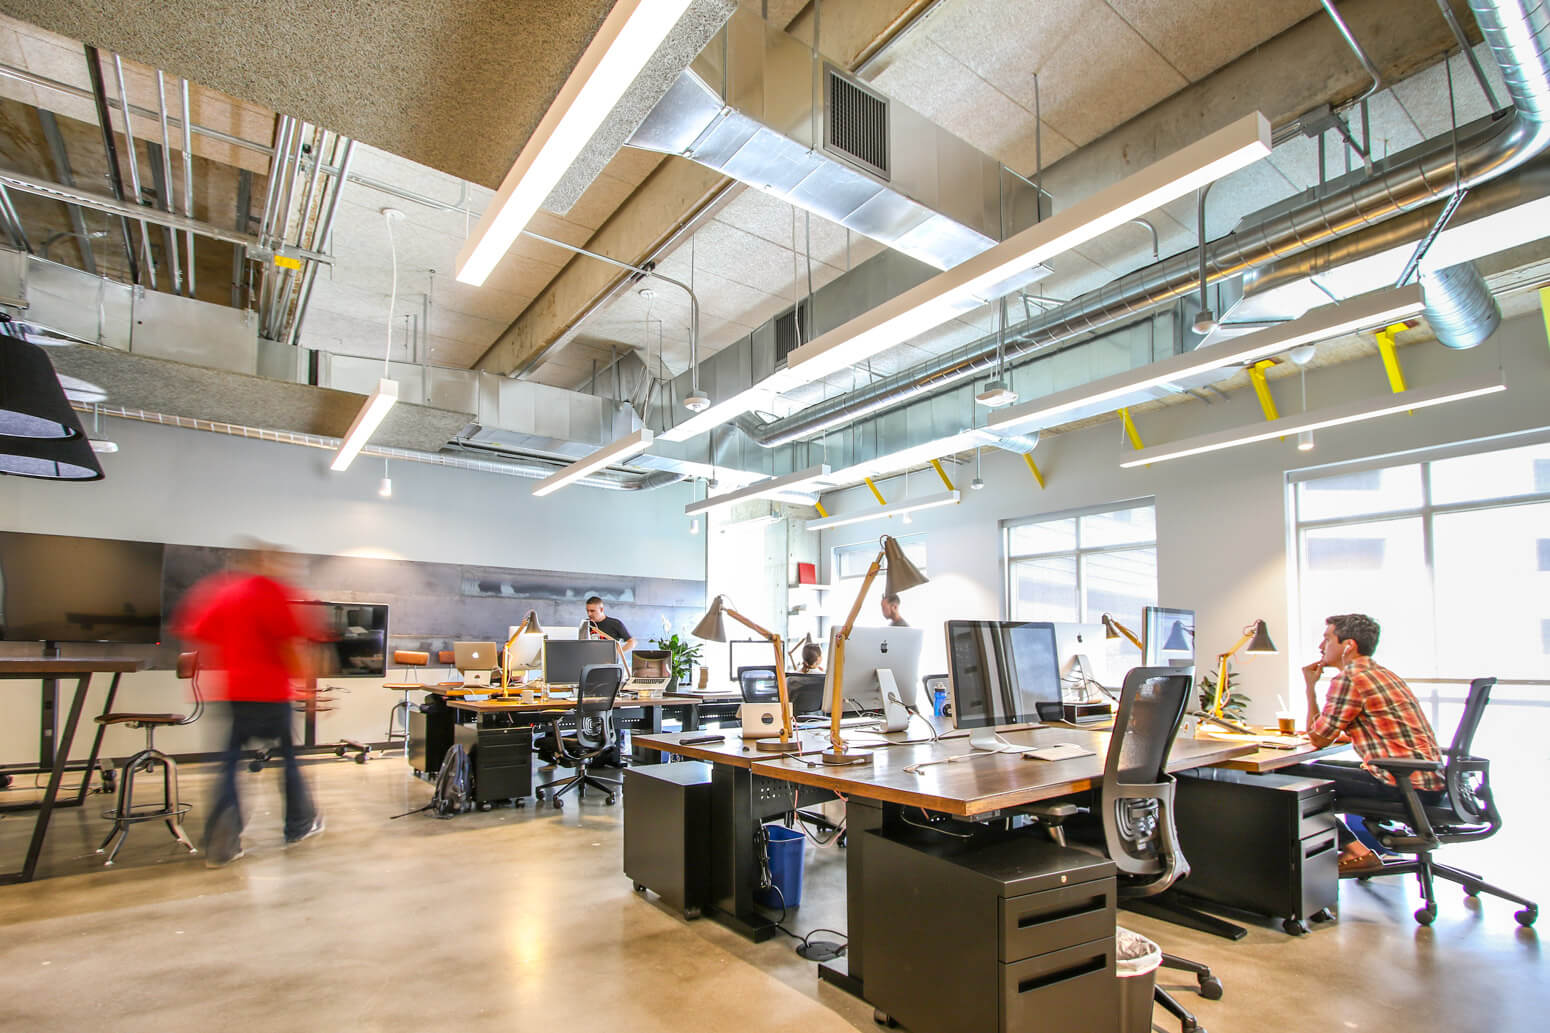 HomeAway Austin Office Killer Spaces-10